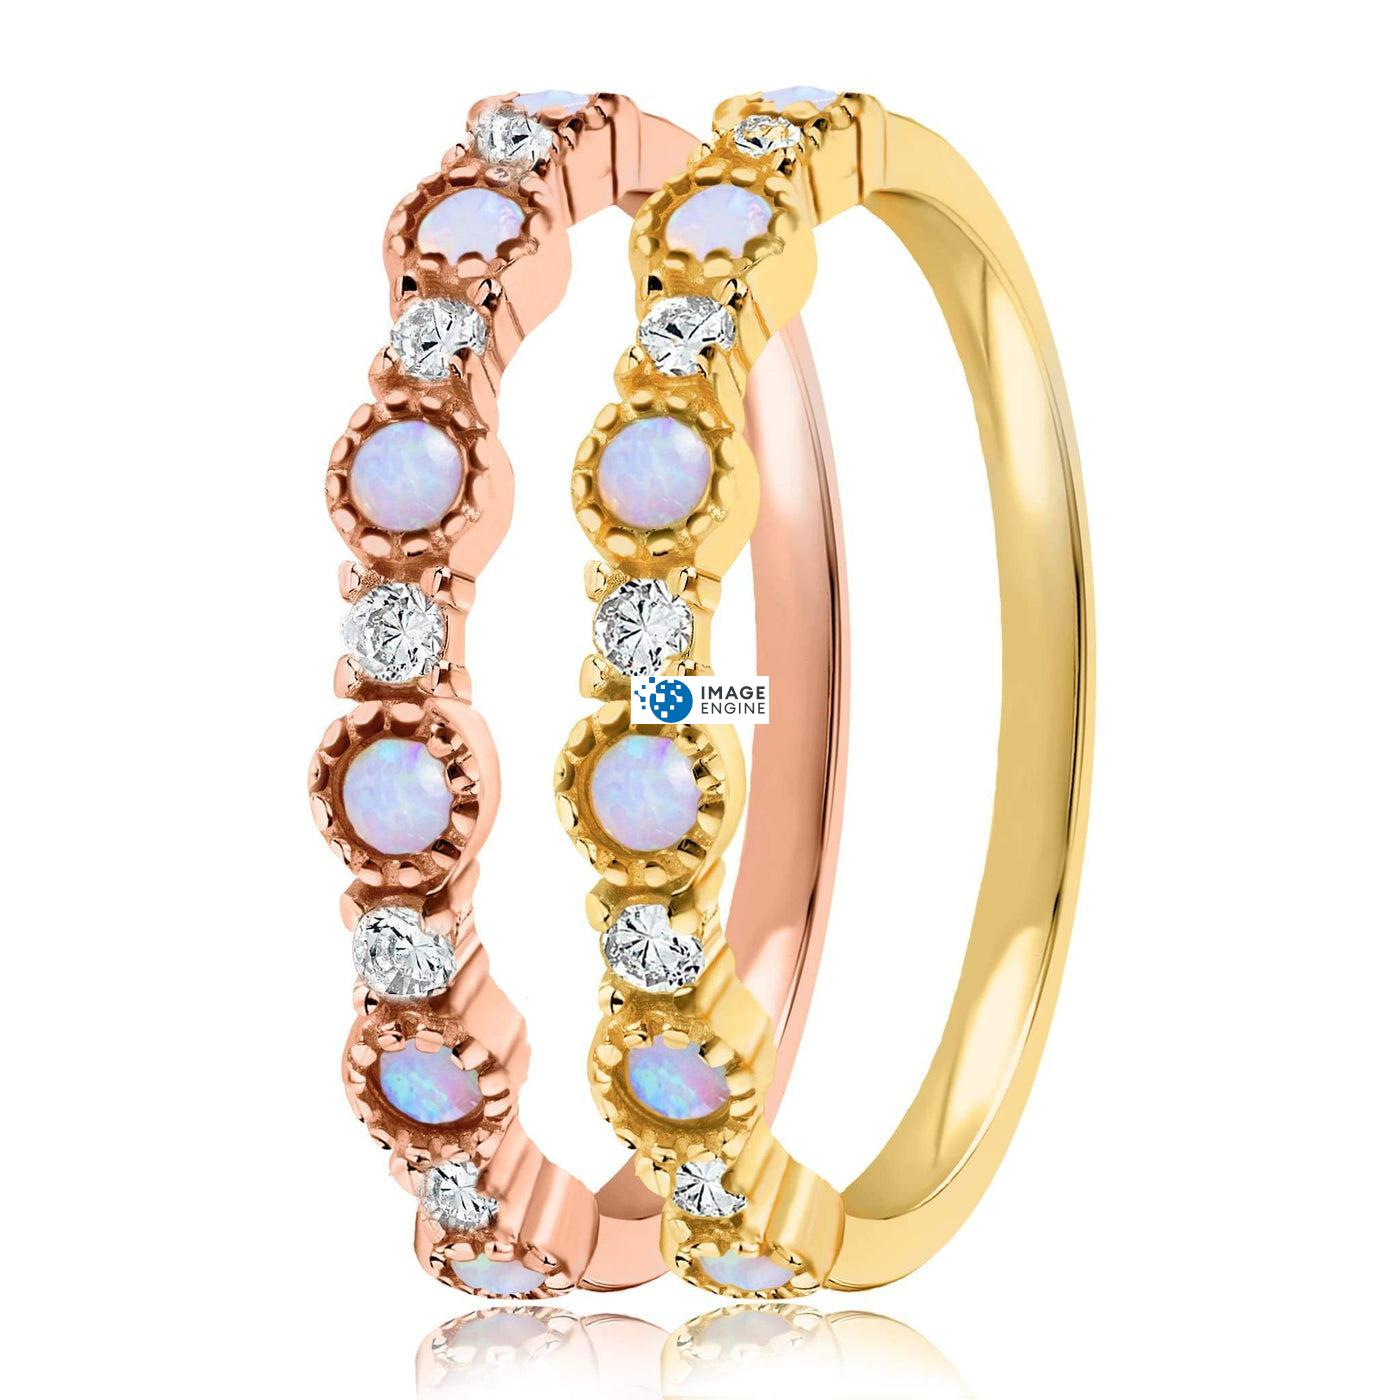 Debra Dots Opal Ring - Side by Side - 18K Yellow Gold Vermeil and 18K Rose Gold Vermeil